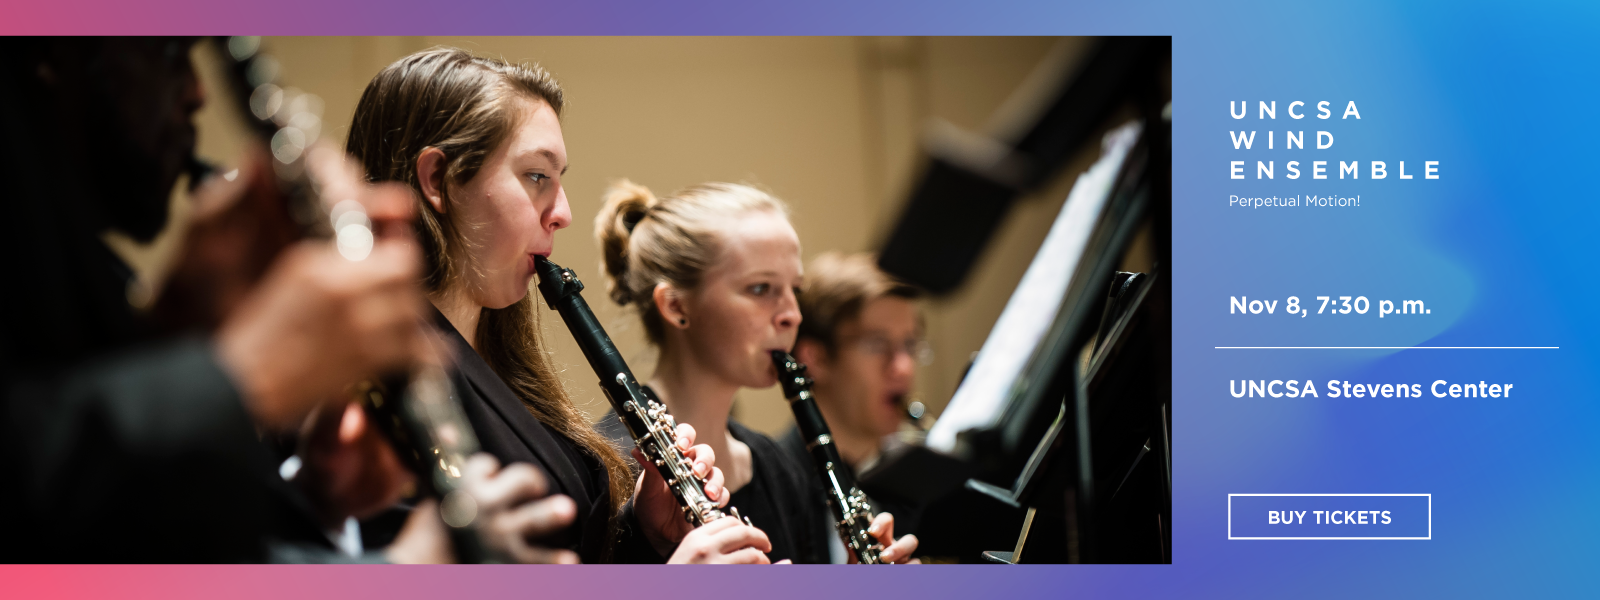 UNCSA artists come together with the Wind Ensemble to create an eclectic and energetic program of adventure, tributes and comedy.>>BUY TICKETS